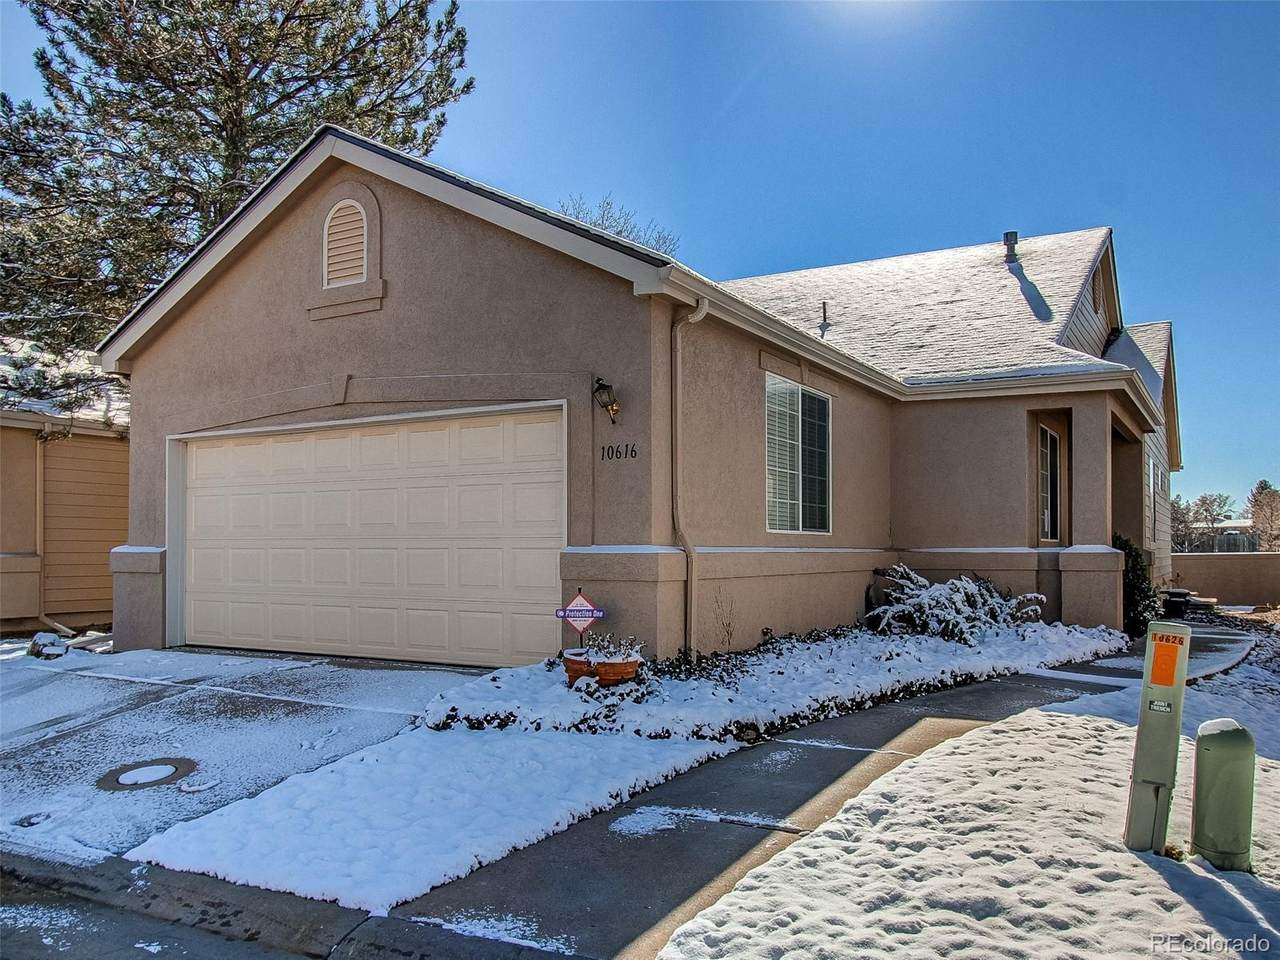 10616 Bellwood Place - Photo 1